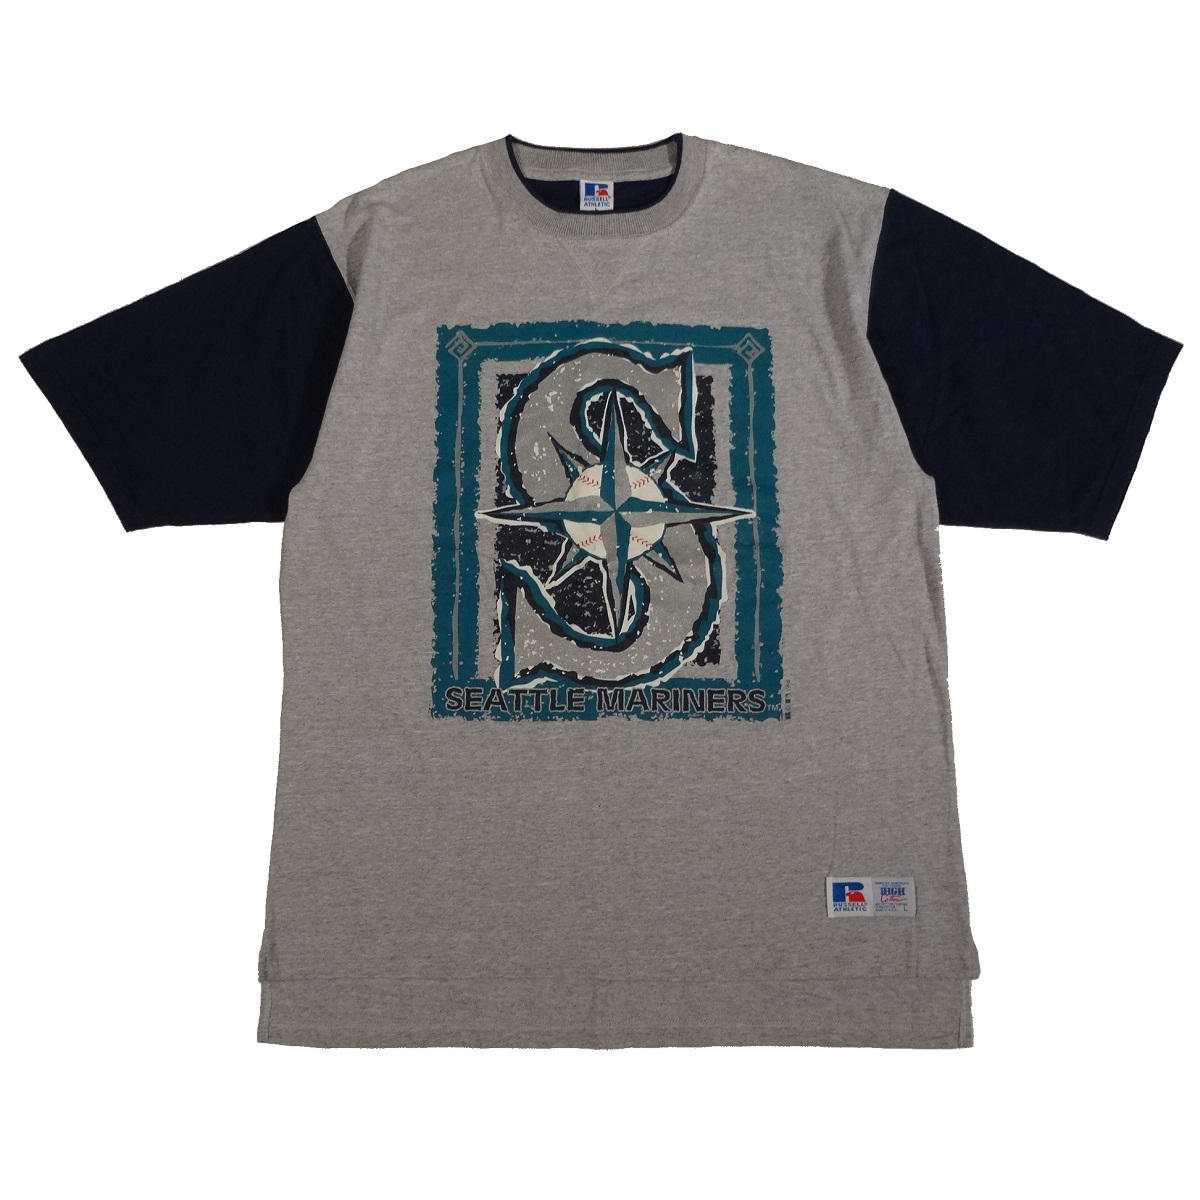 seattle mariners vintage 90s t shirt 1994 front